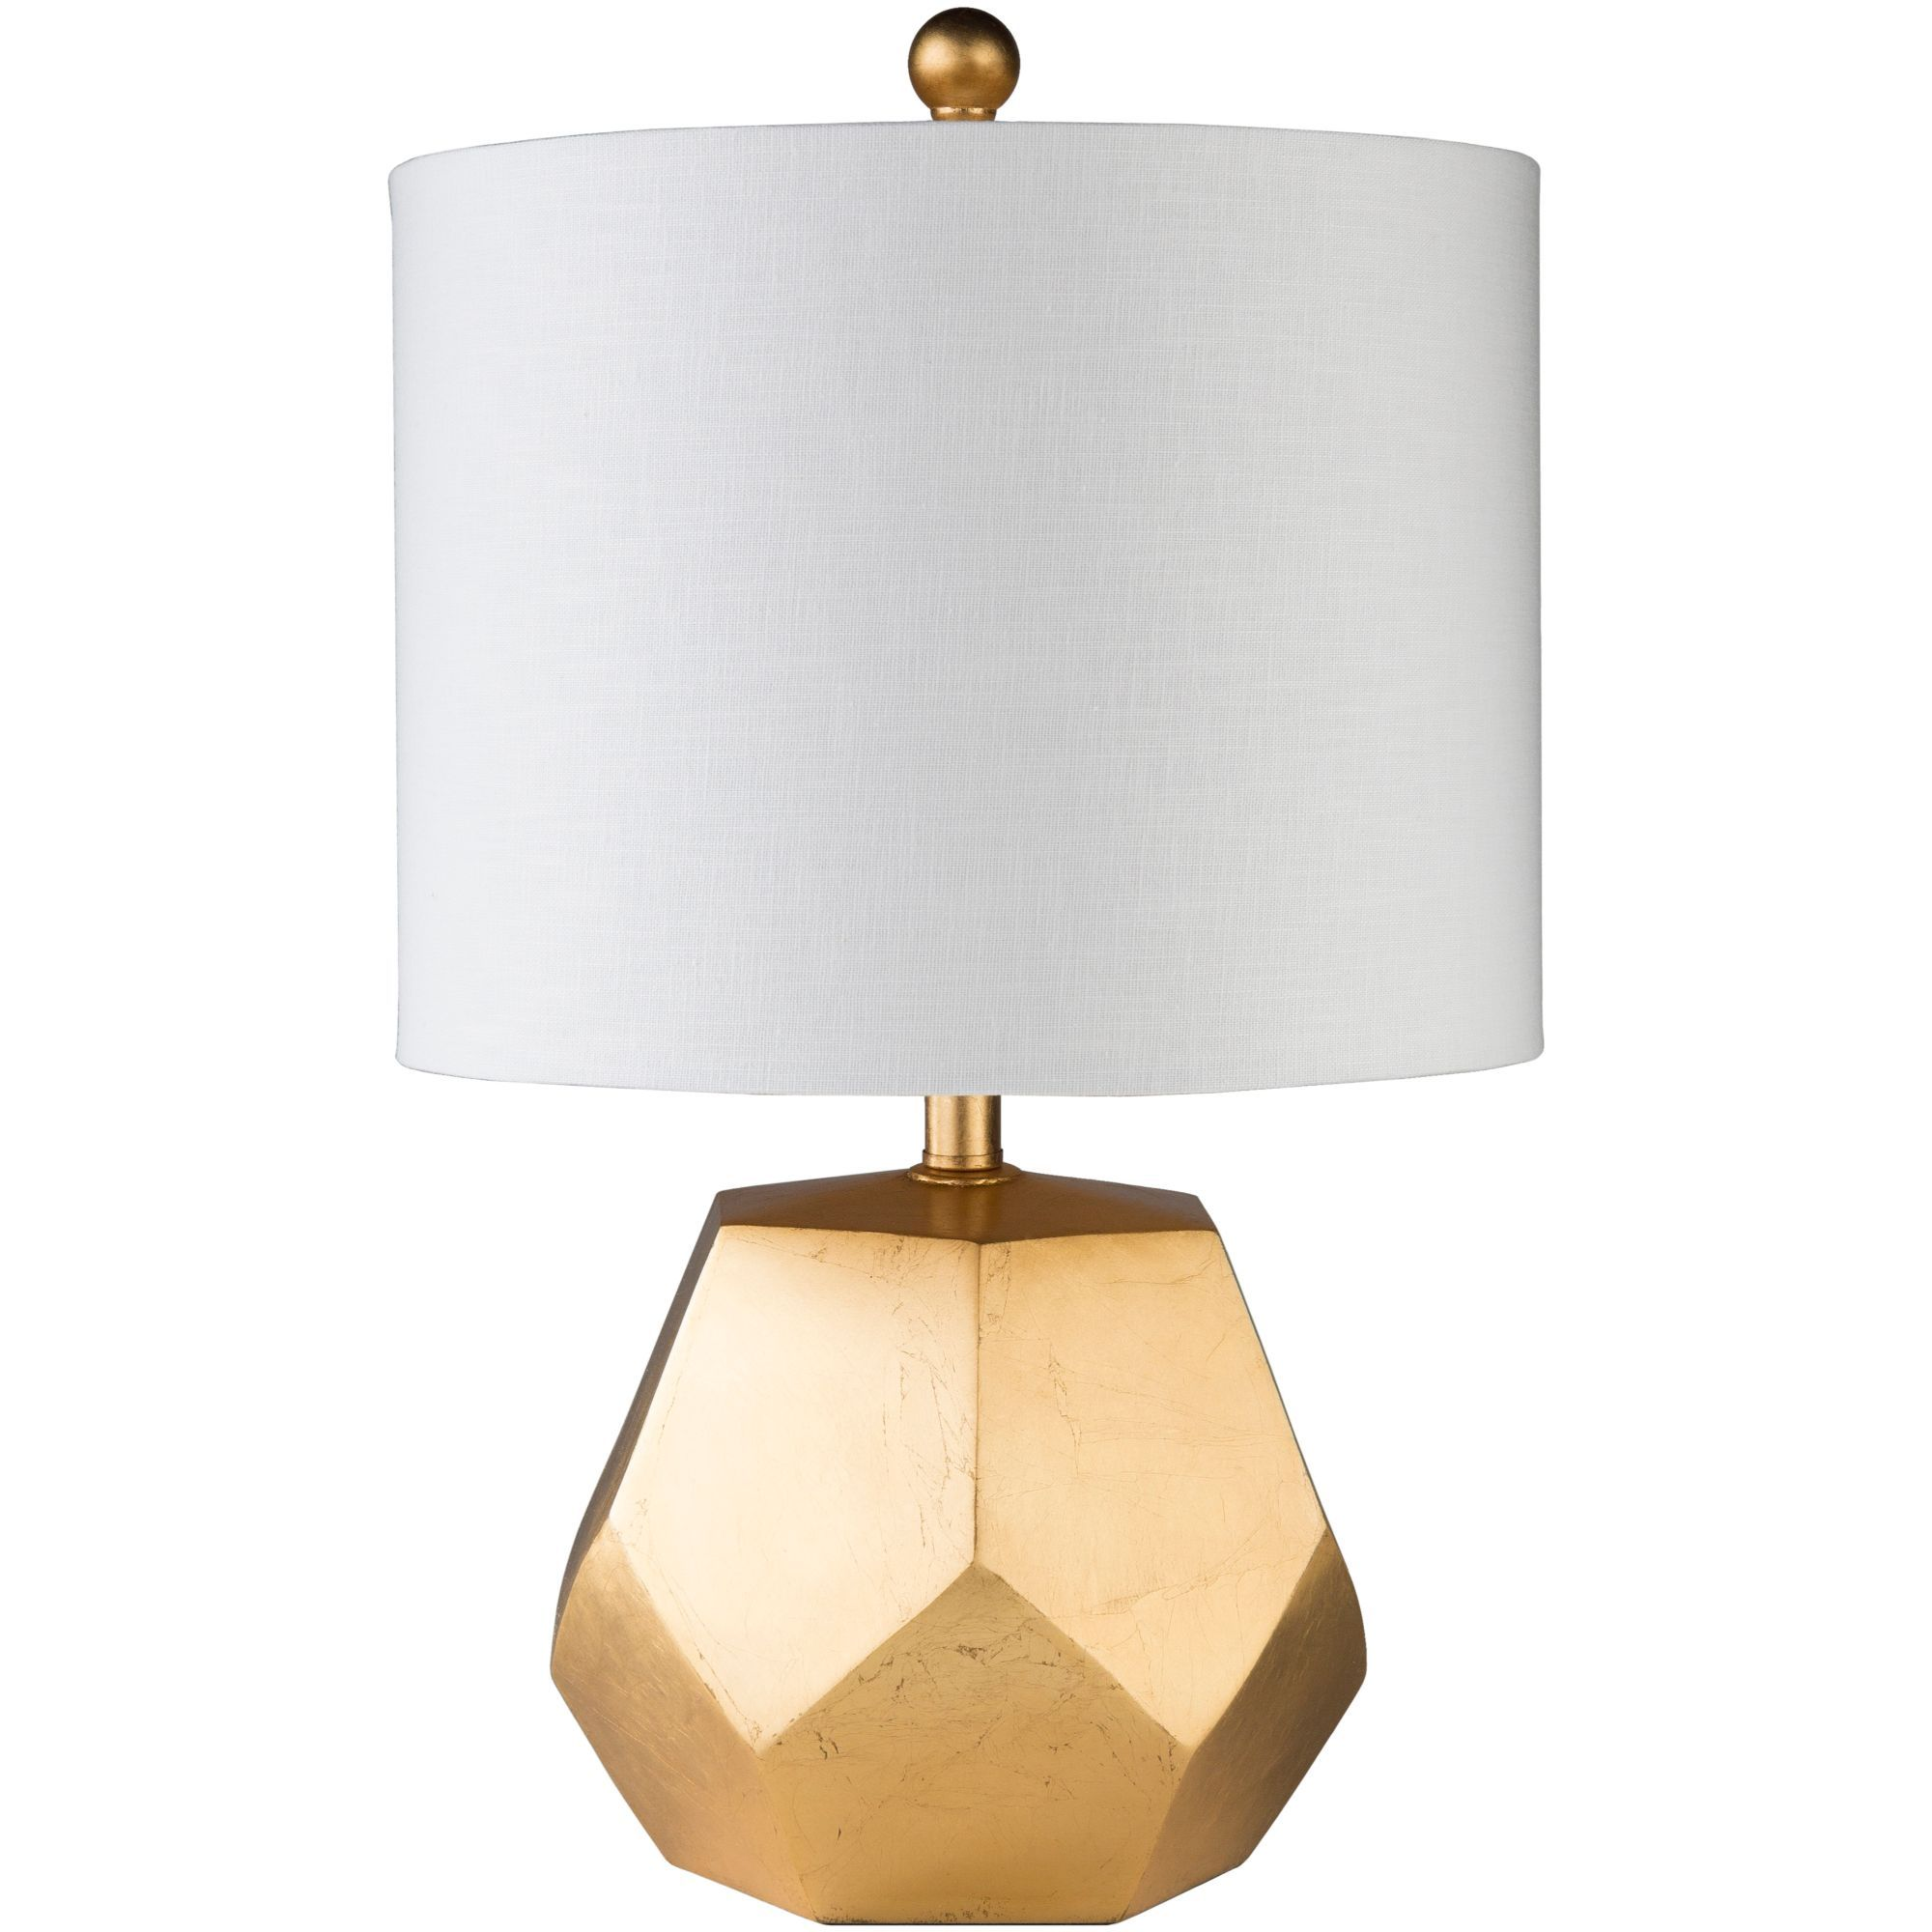 21 5 Glossy White And Gold Colored Table Lamp With Modified Drum Shade Gold Table Lamp Gold Bedside Lamps Table Lamp